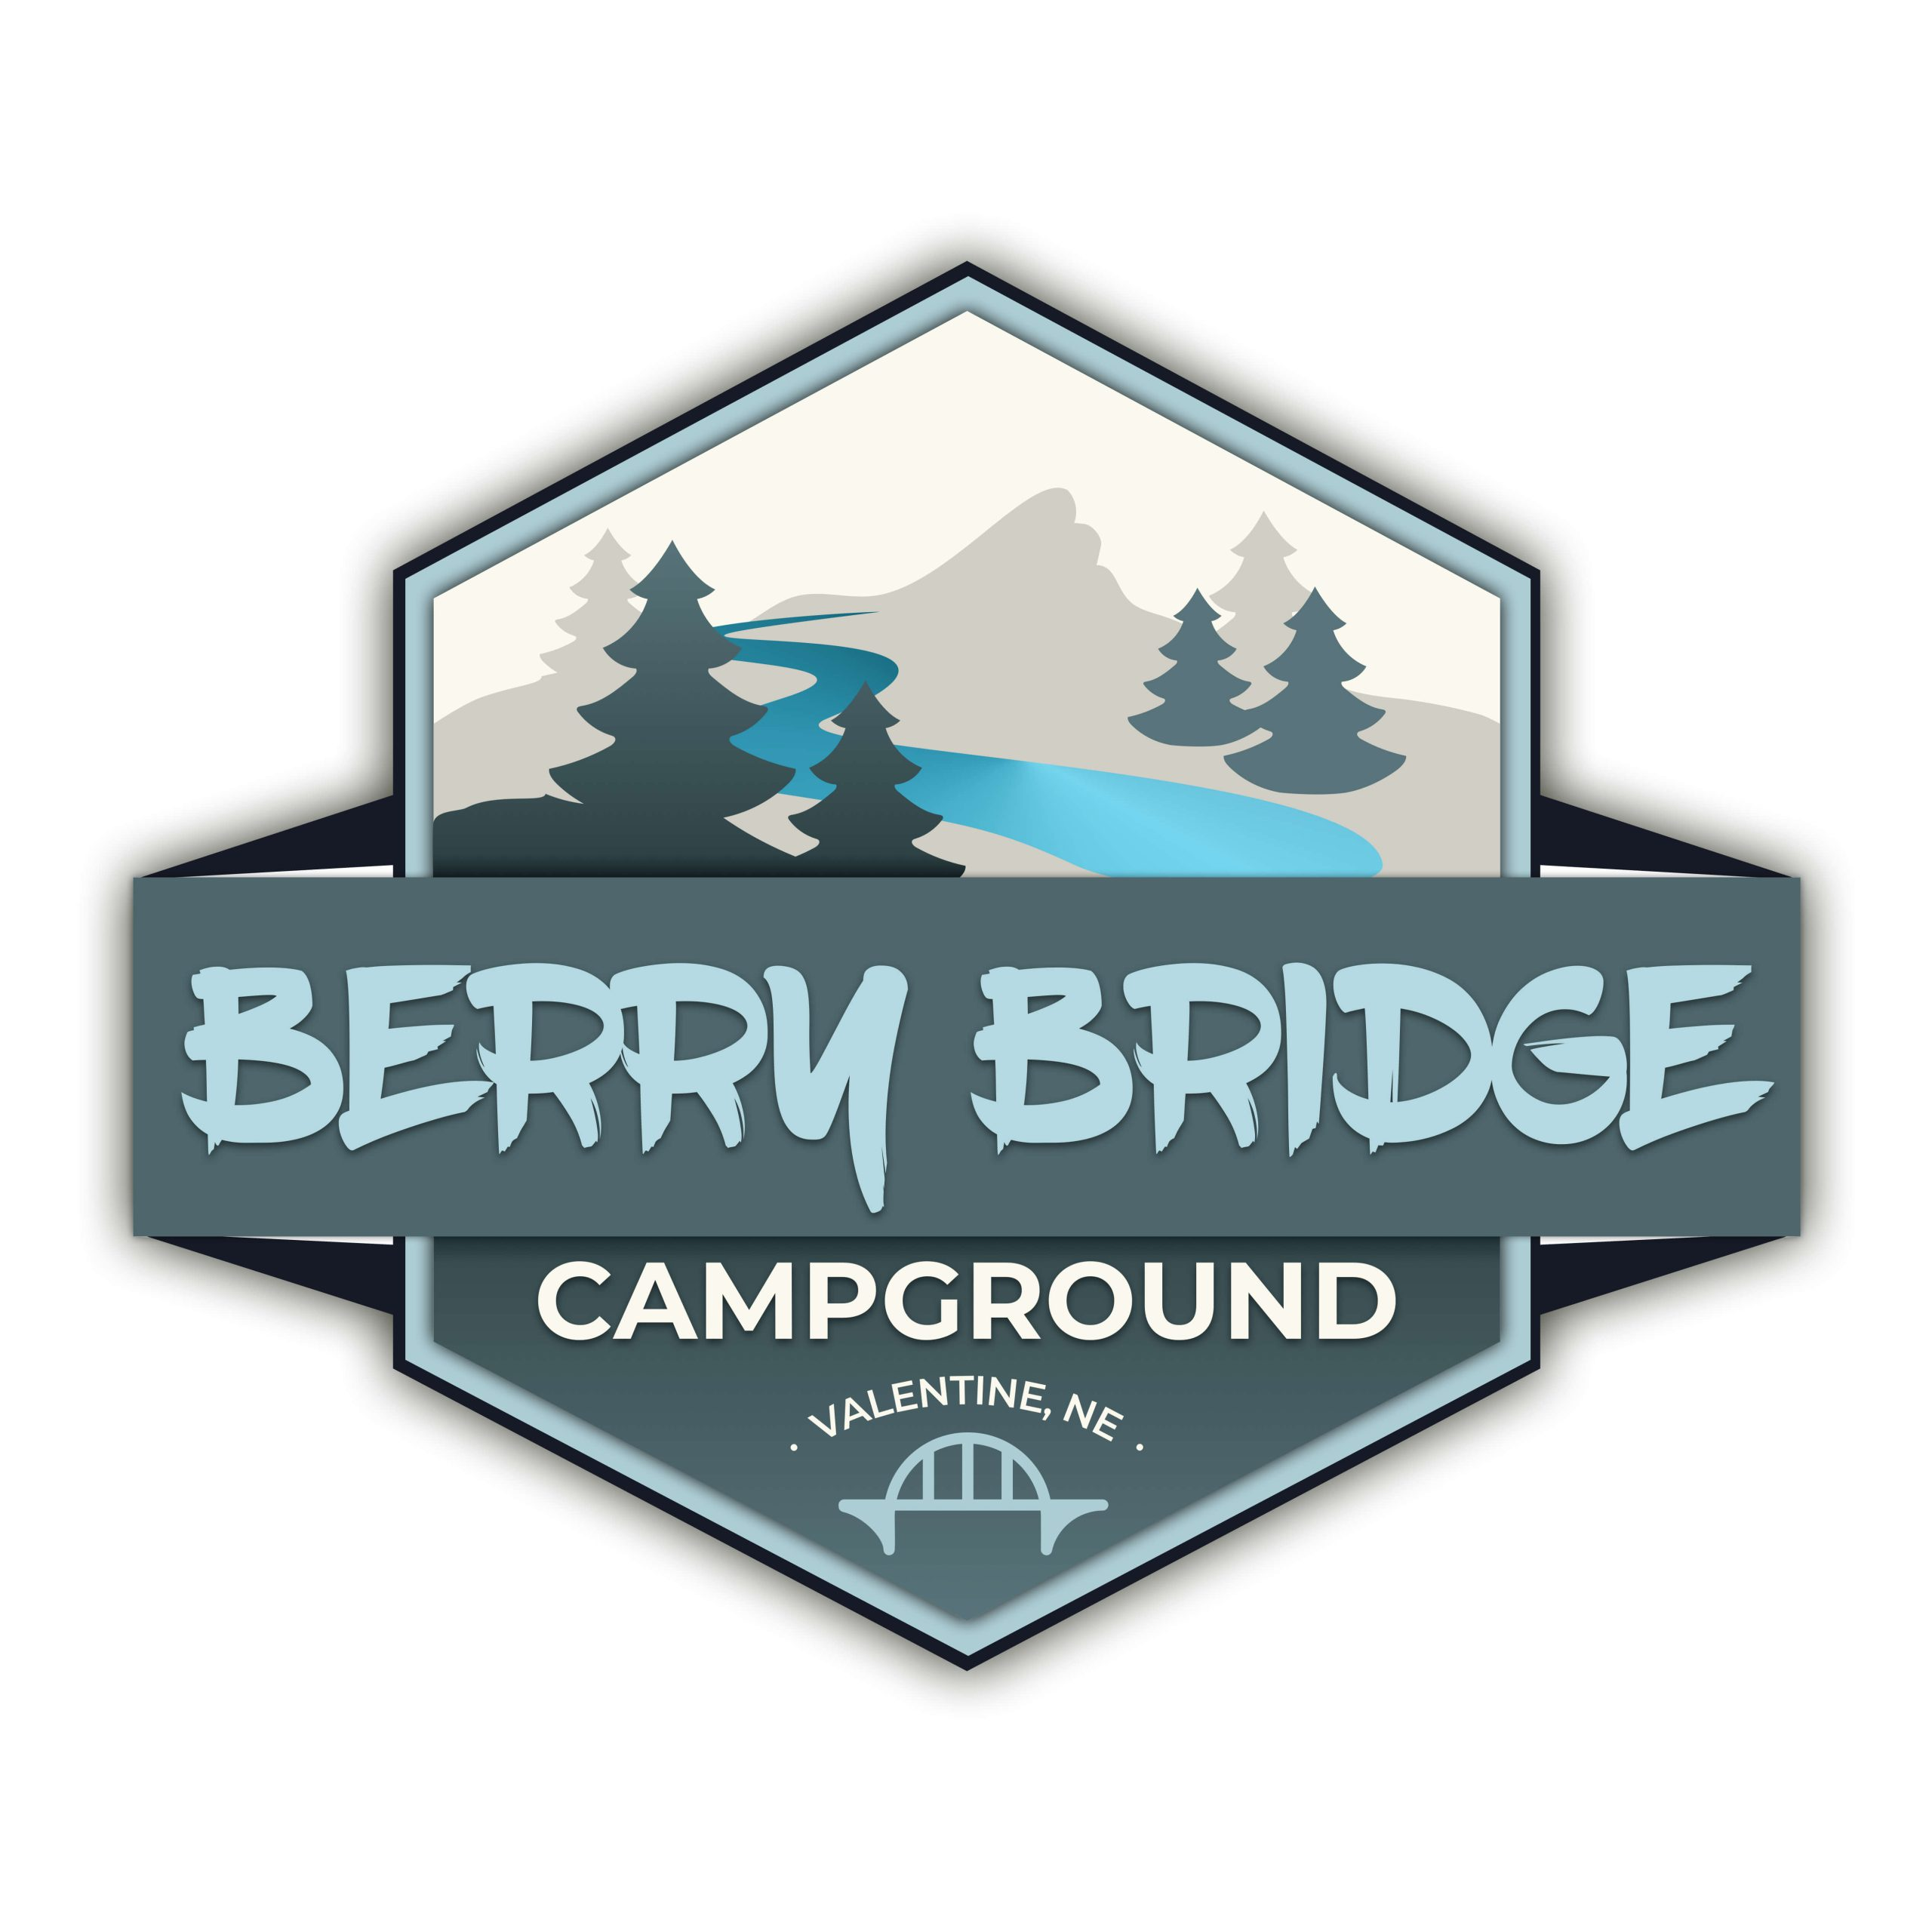 Berry Bridge Campground logo. Shades of blue with trees and river